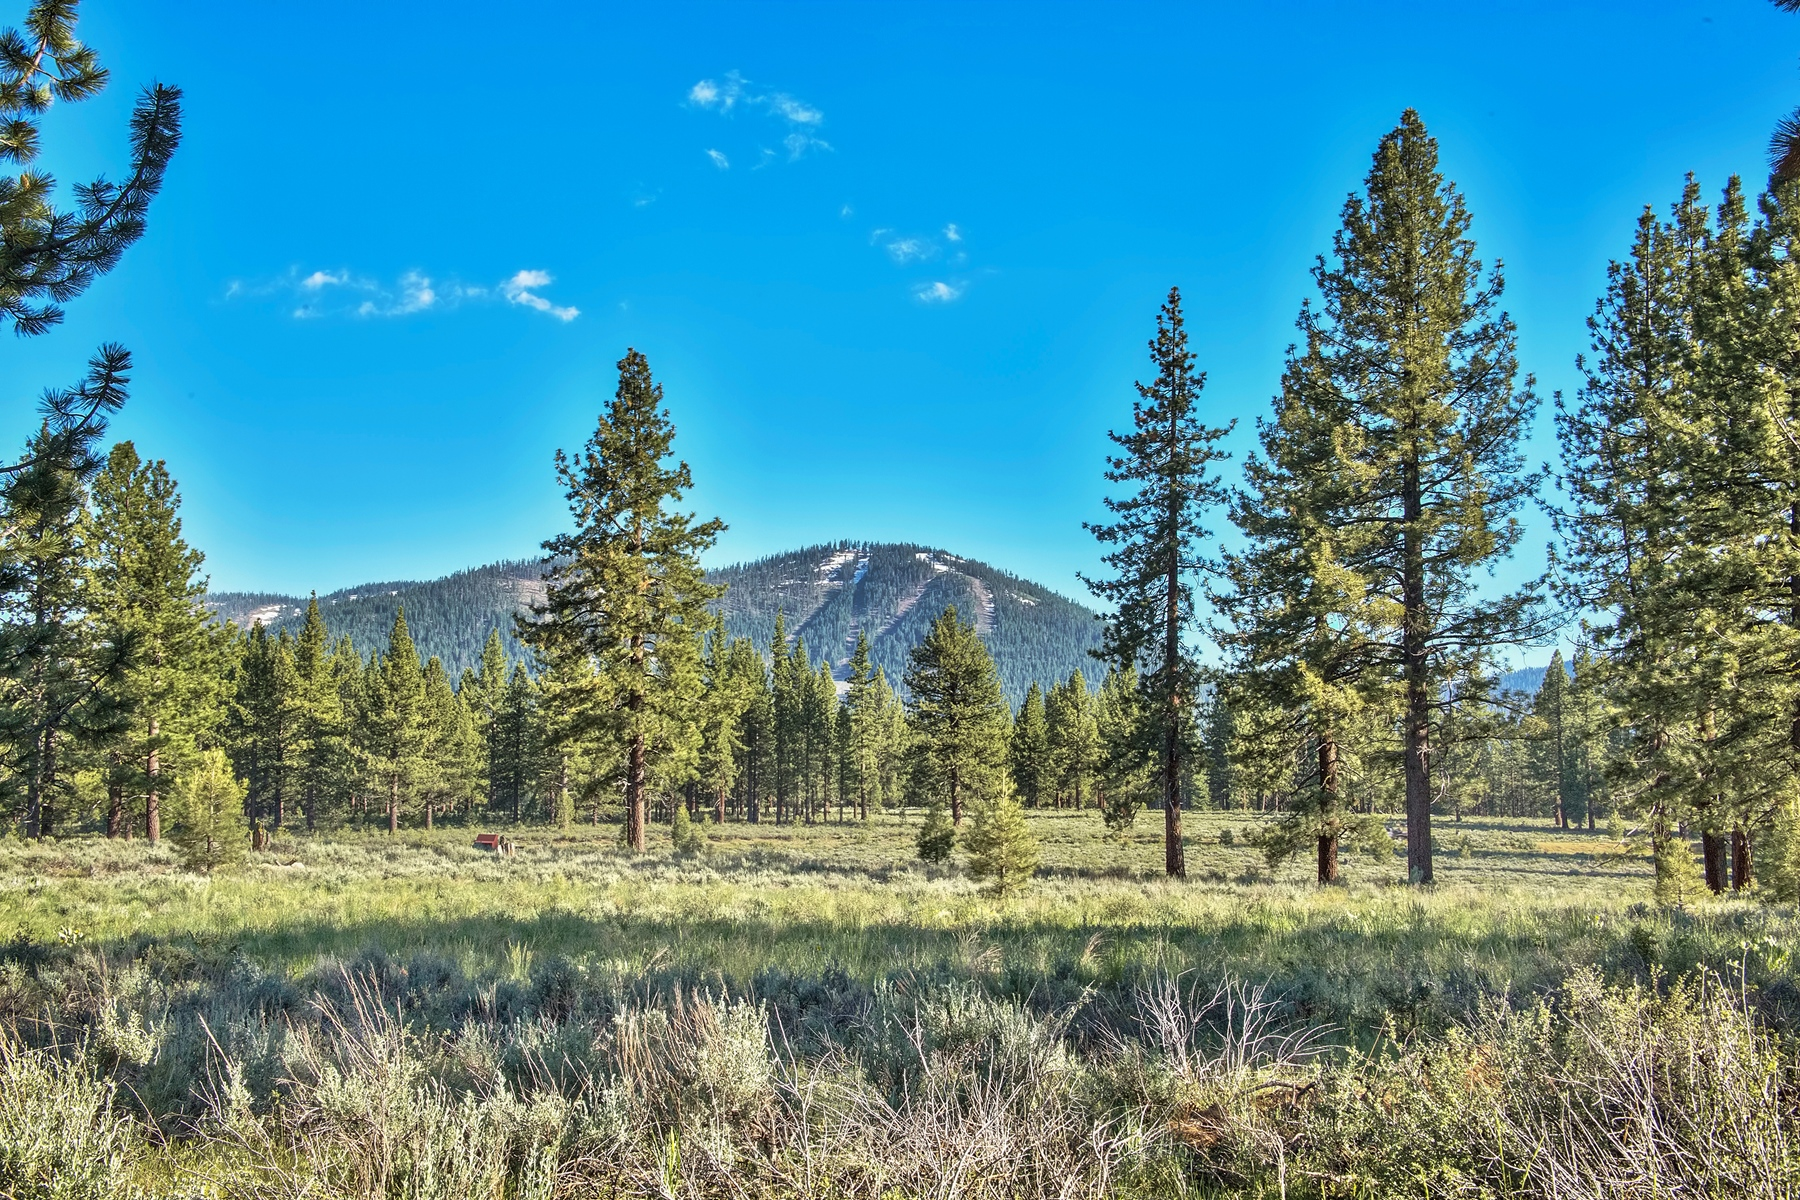 Property for Active at 9701 North Shore Boulevard, Truckee, CA 9701 North Shore Blvd. 9701 Highway 267 Truckee, California 96161 United States